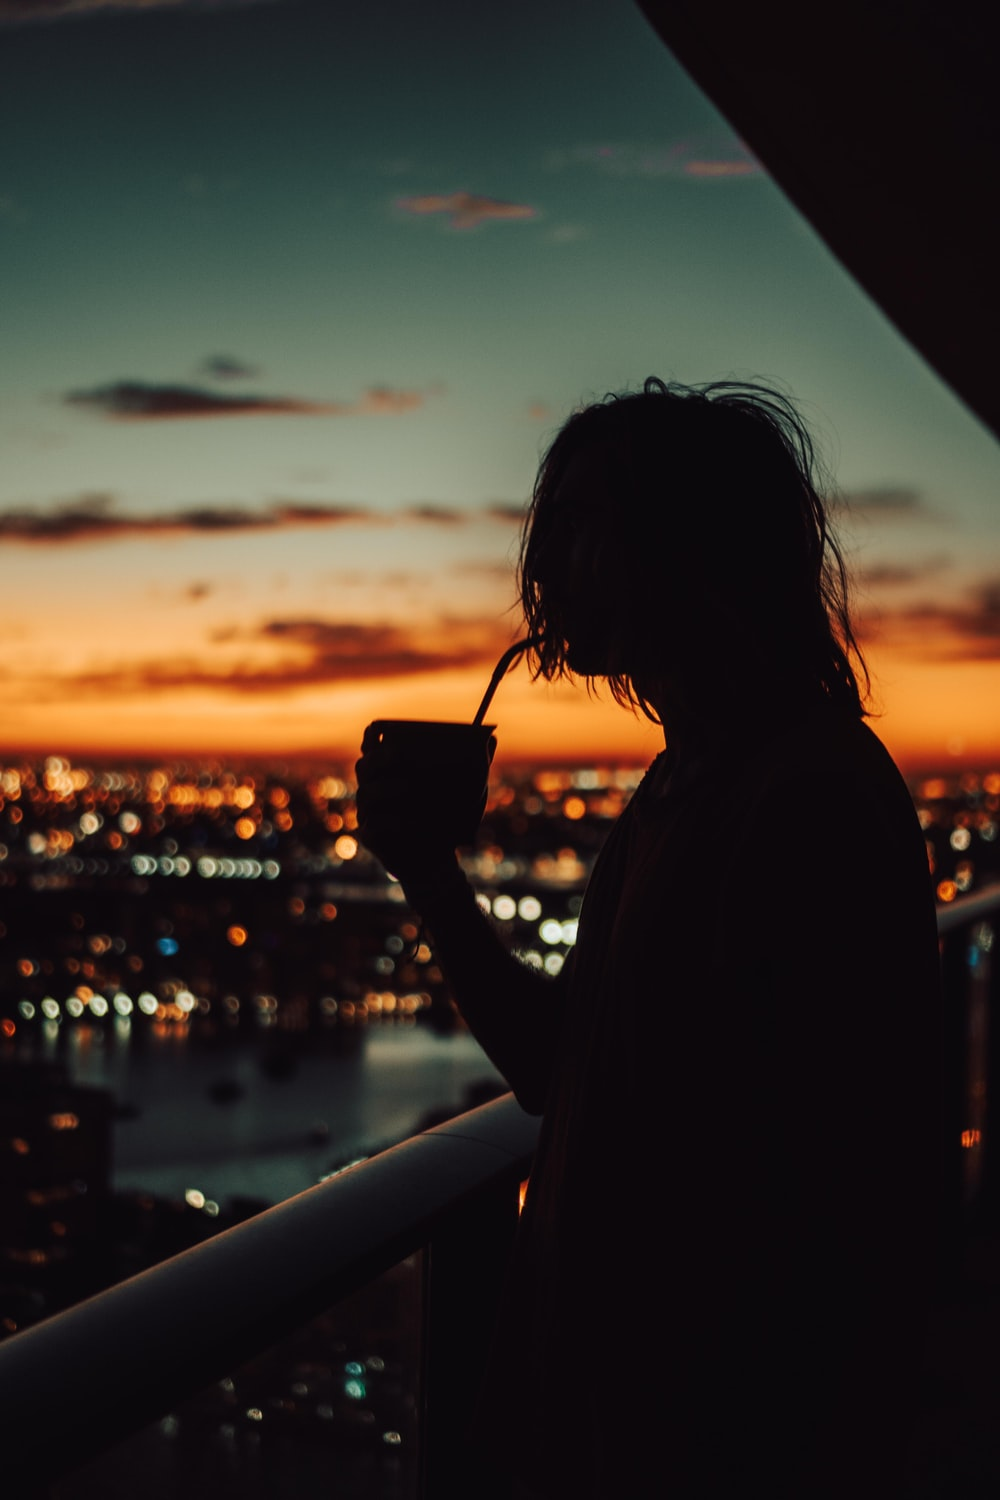 silhouette of person sipping coffee on cup during golden hour